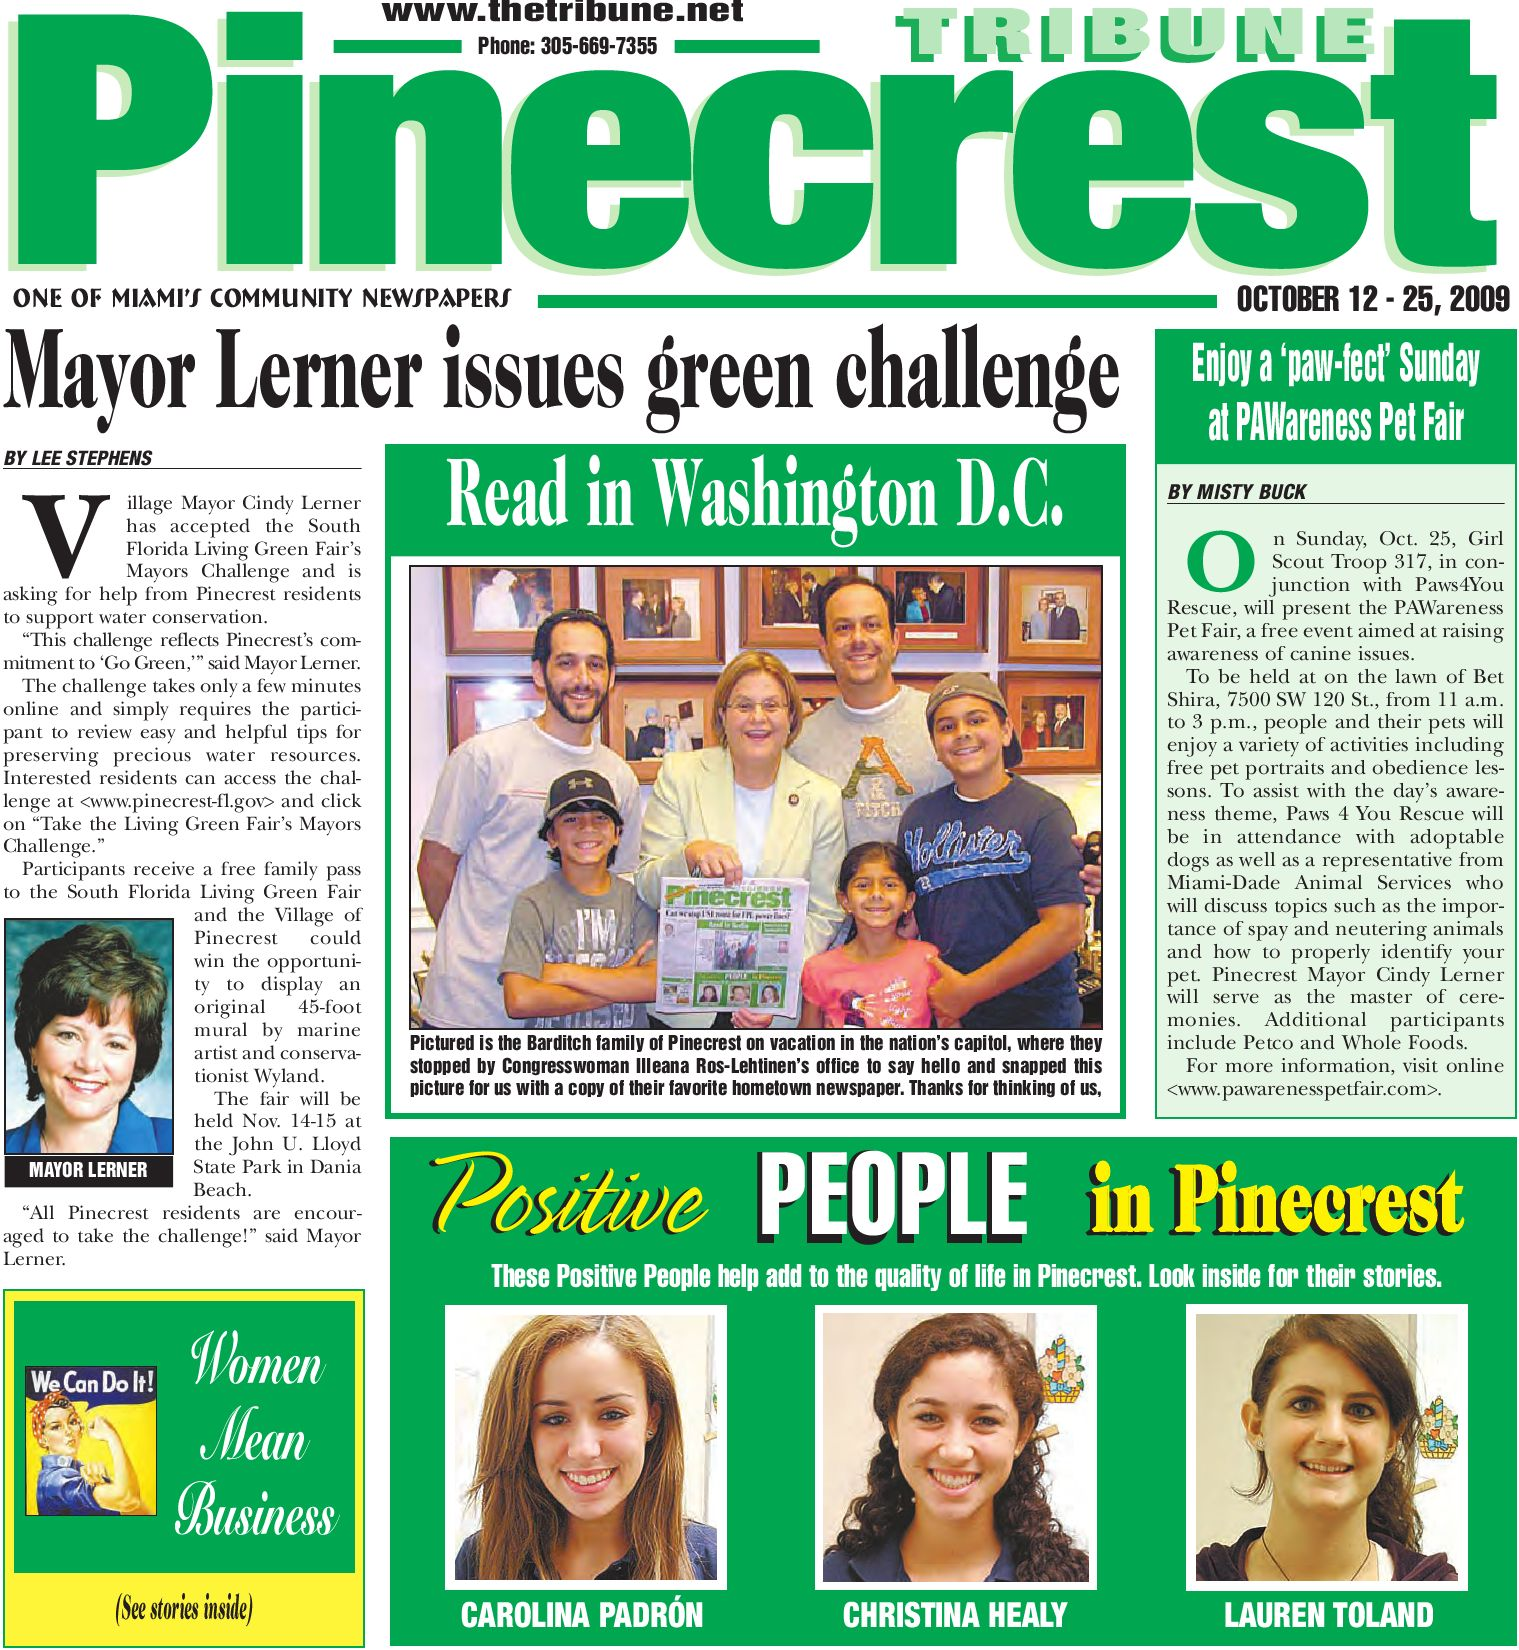 Pinecrest Tribune October 12 Edition Local Events Positive News Corolla Radio Wiring Diagram Likewise Petsmart Dog Seat Belt Harness Miami By Community Newspapers Issuu